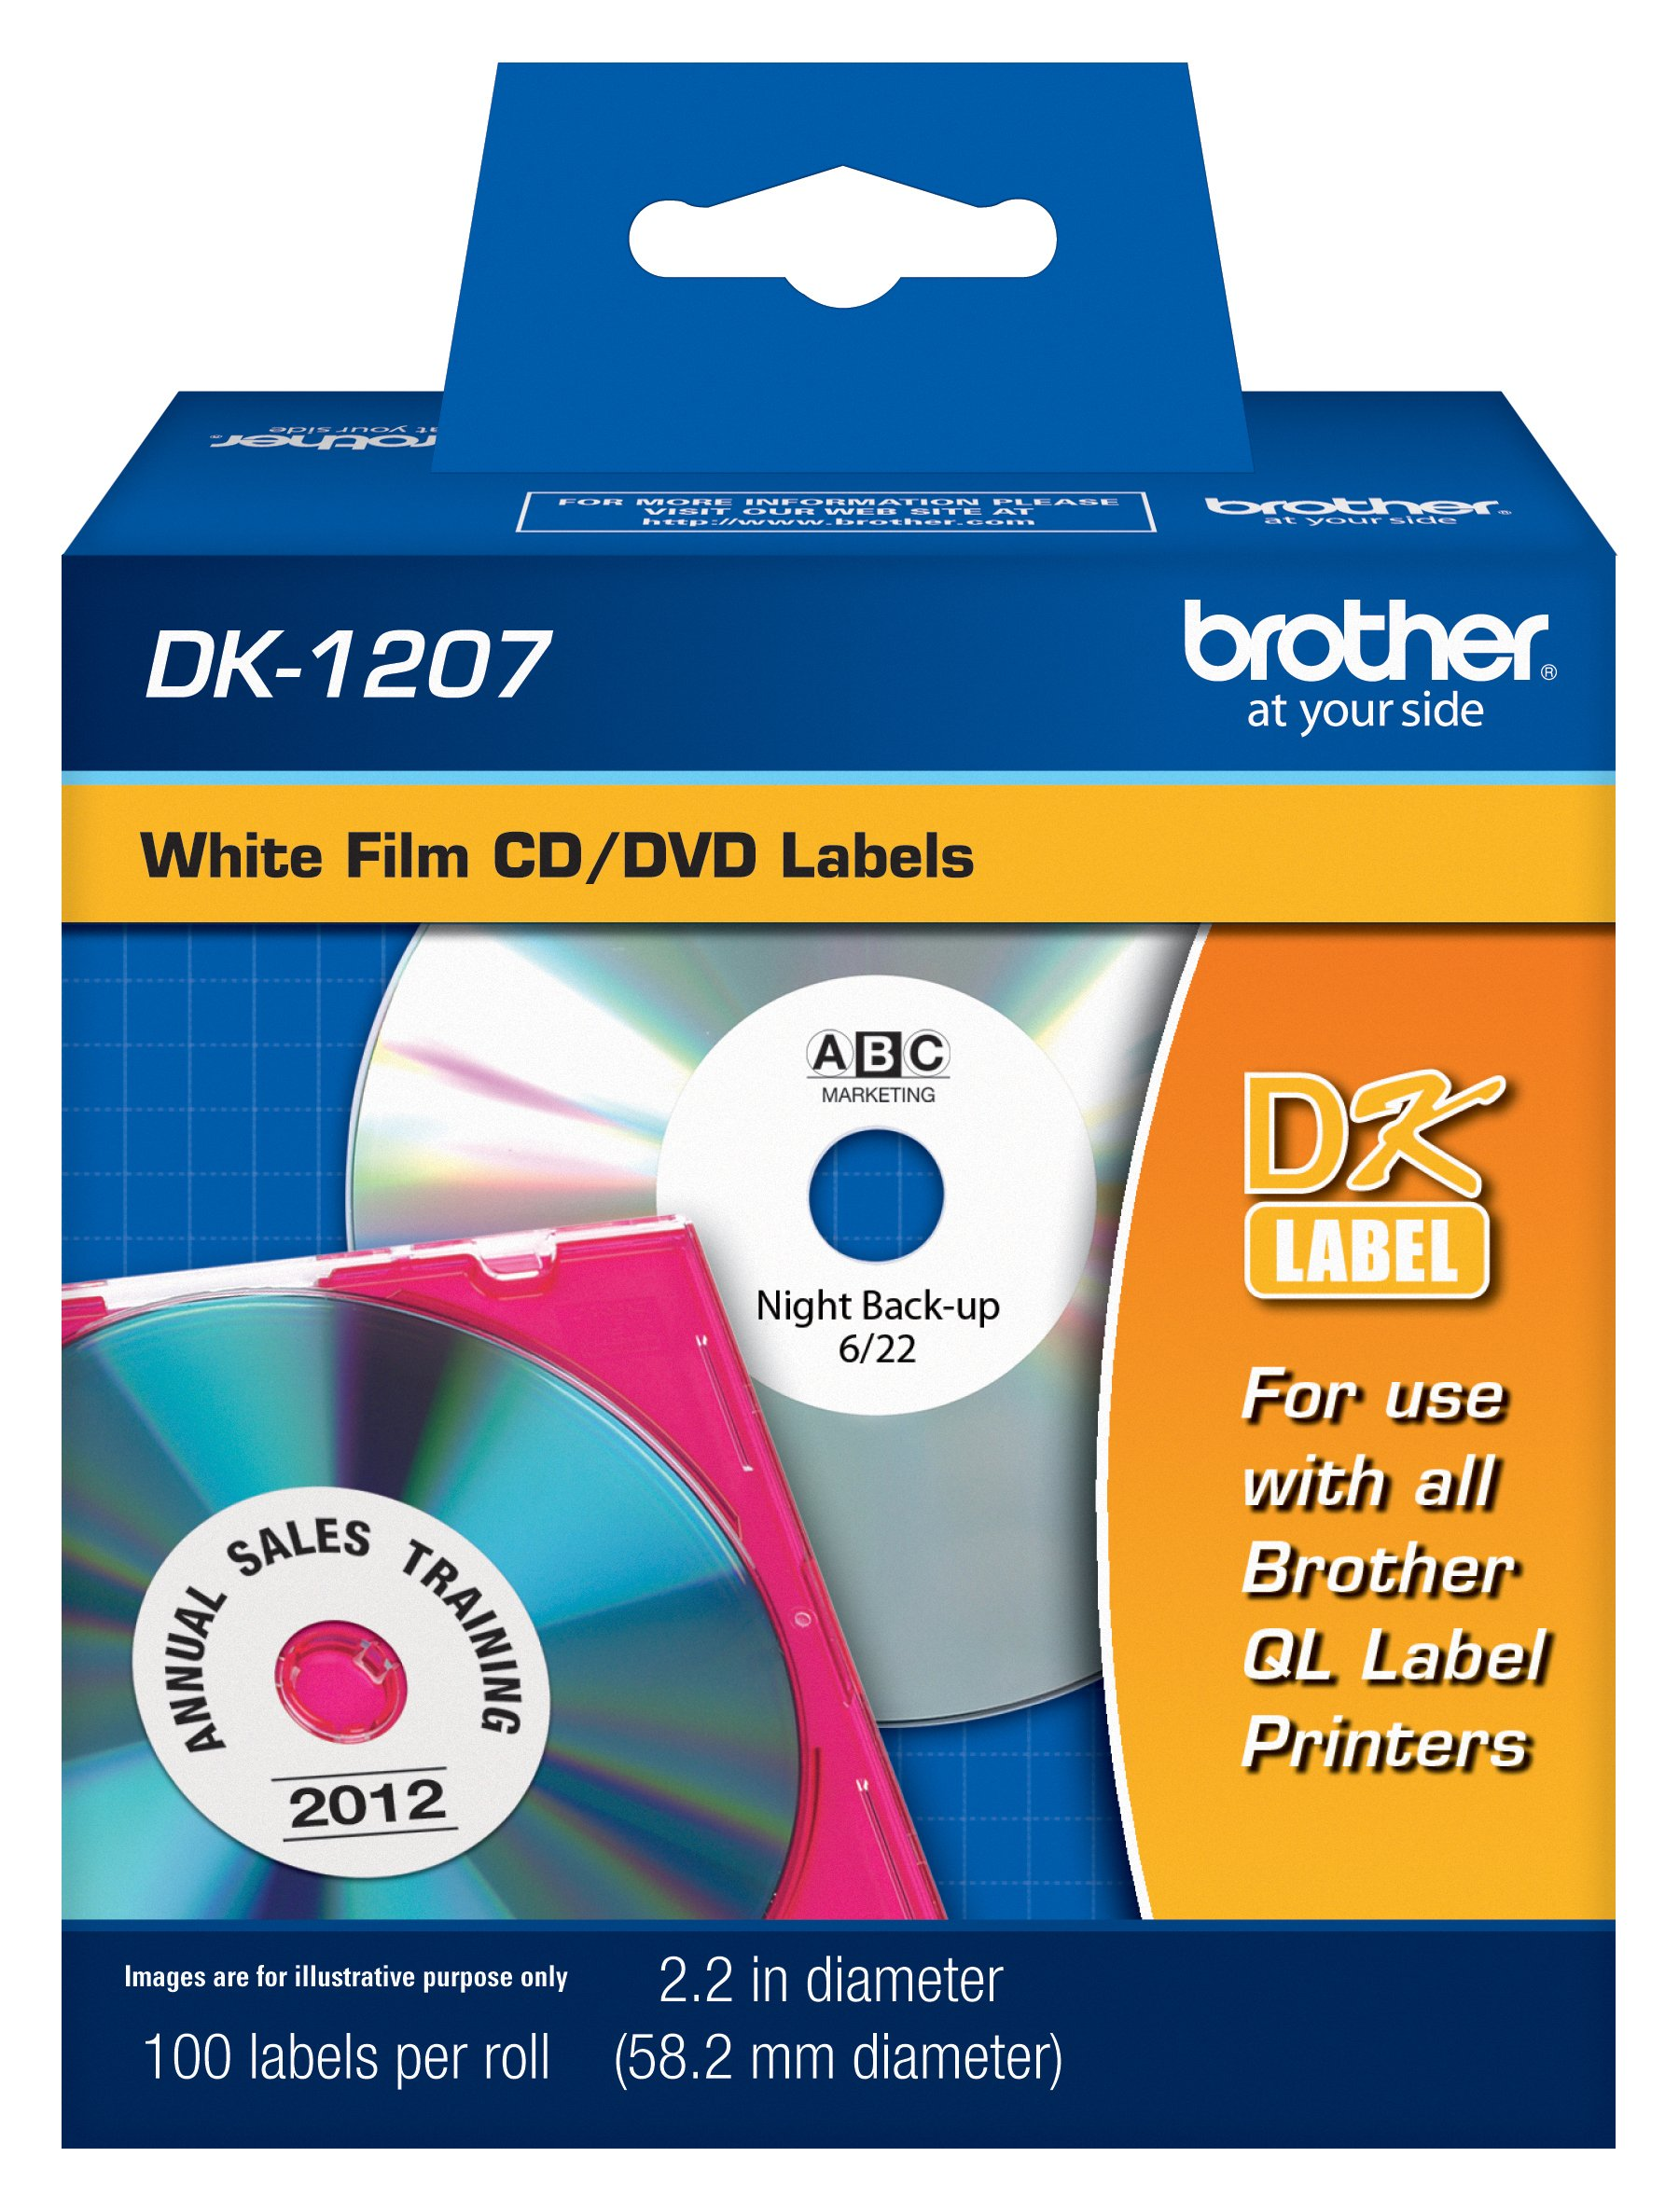 Brother DK-1207 CD/DVD Label Roll